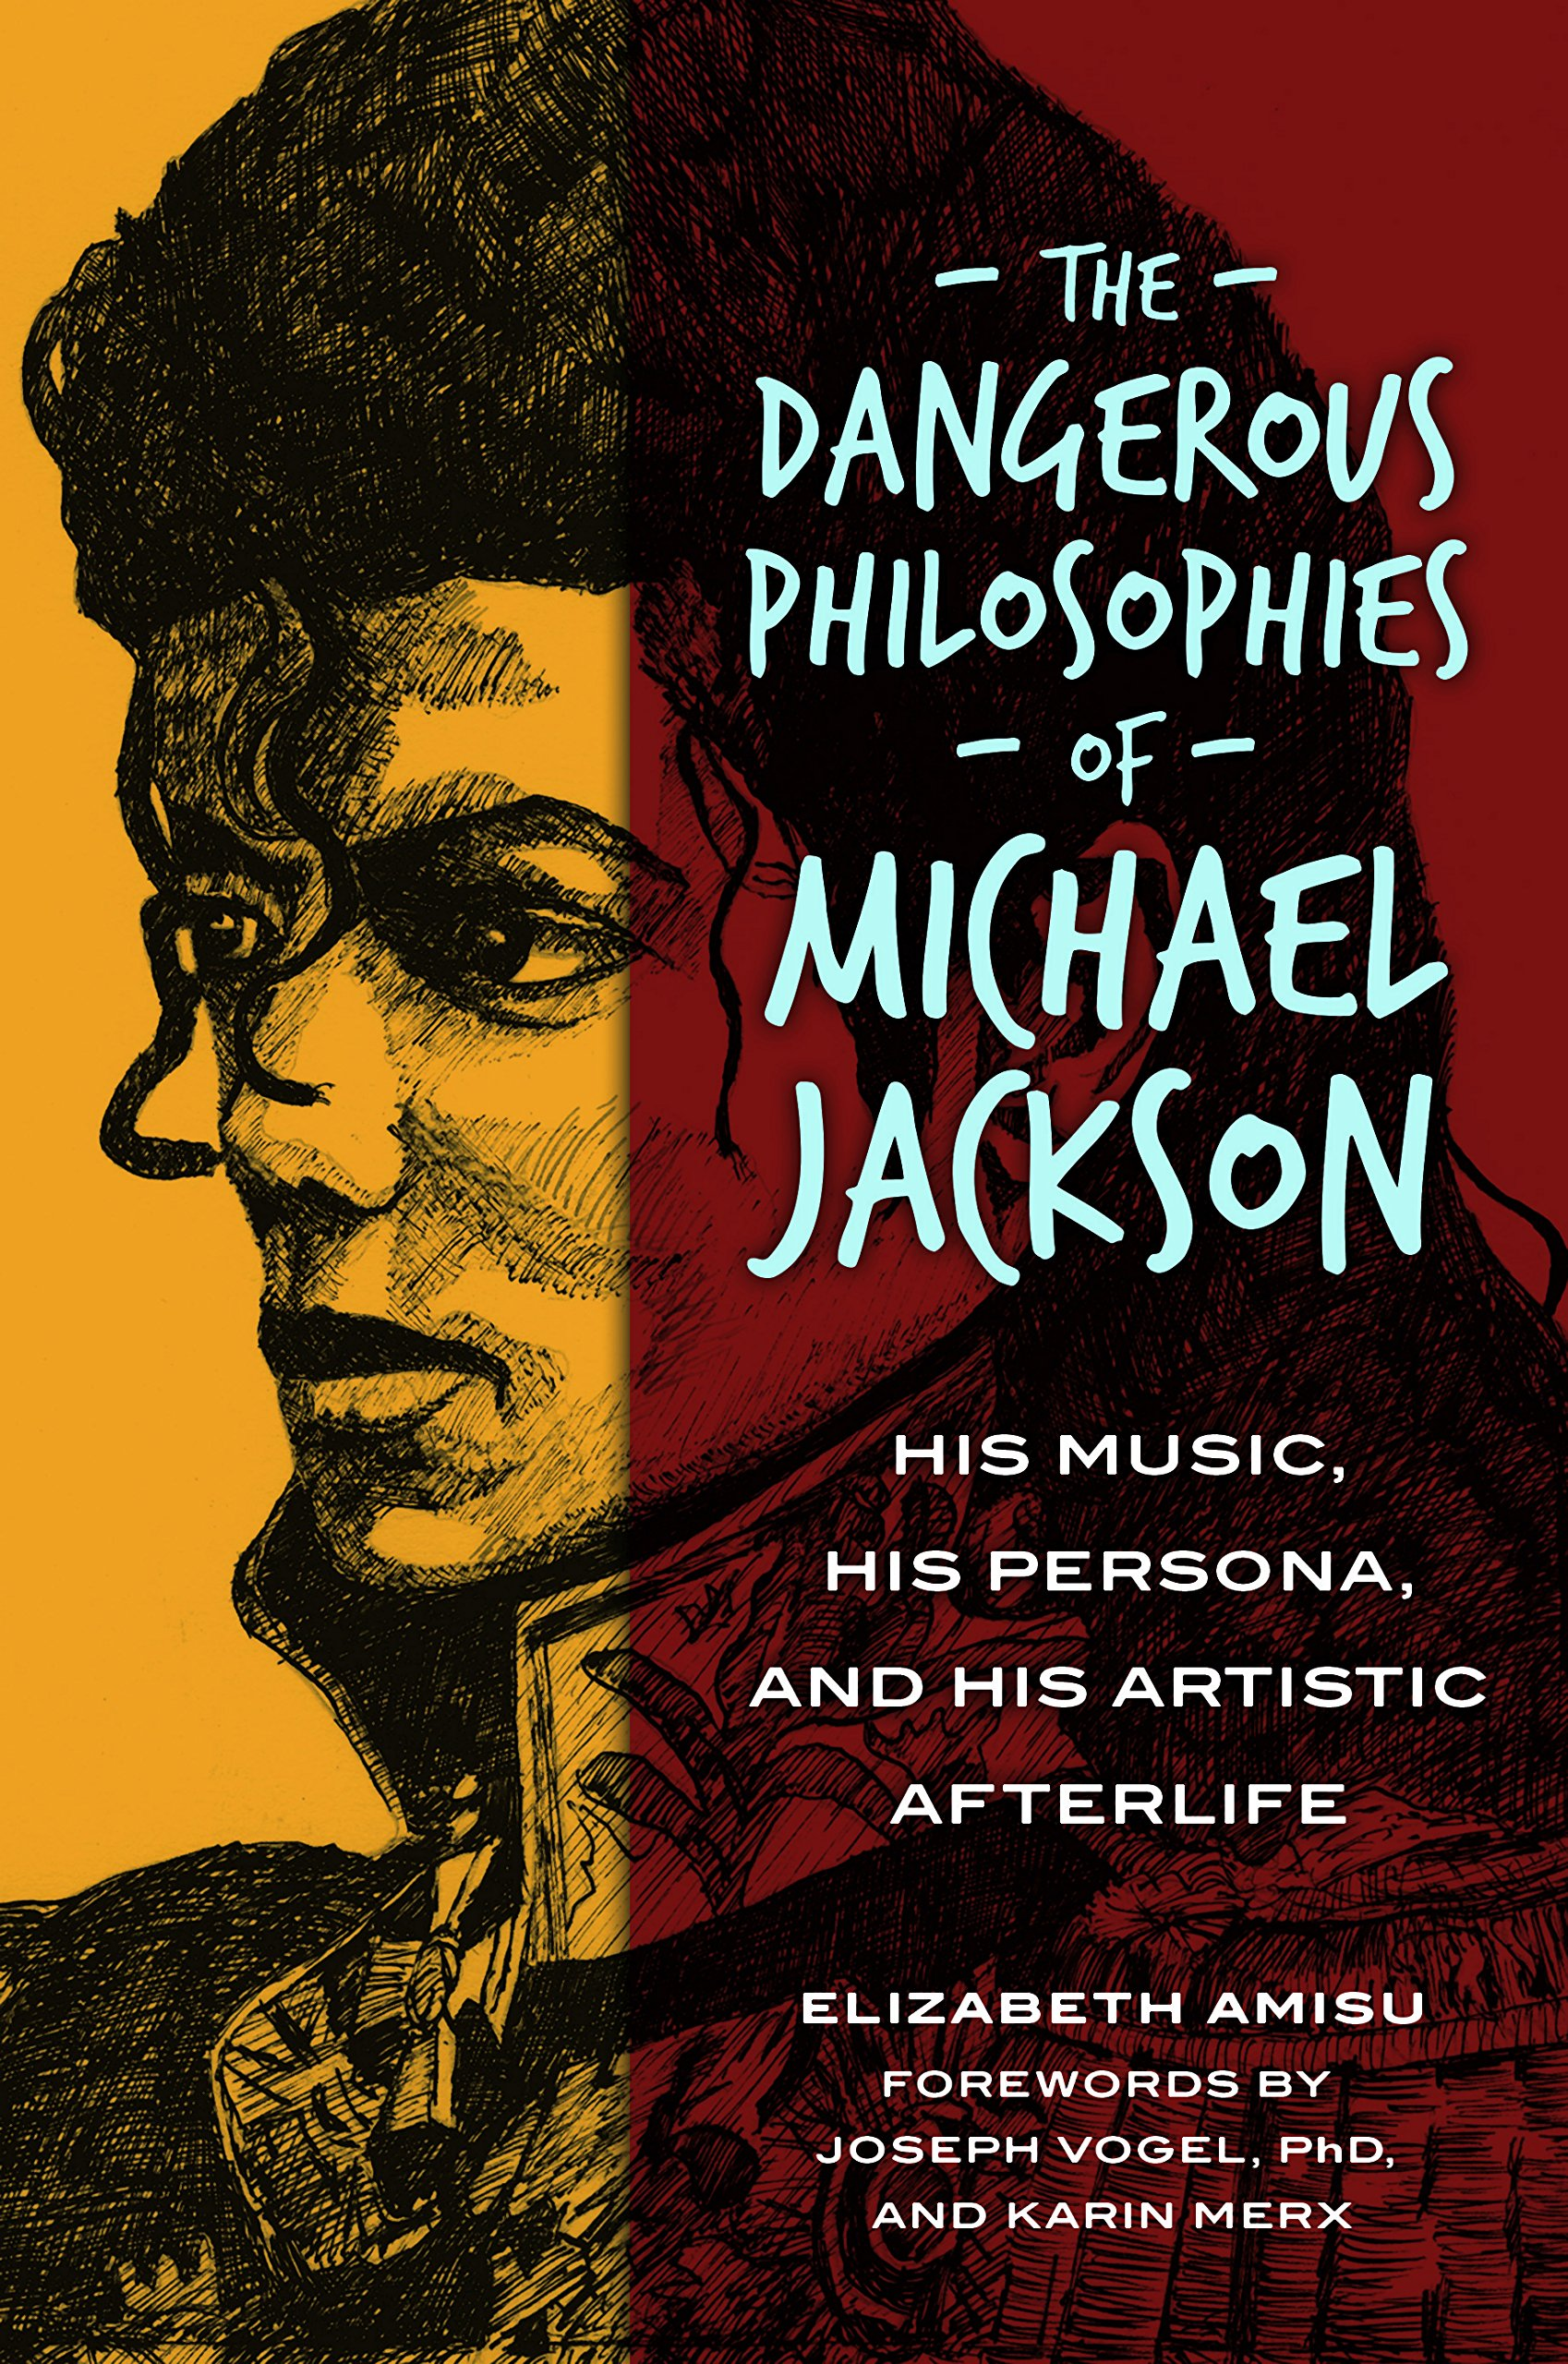 Dangerous Philosophies Michael Jackson Book Cover